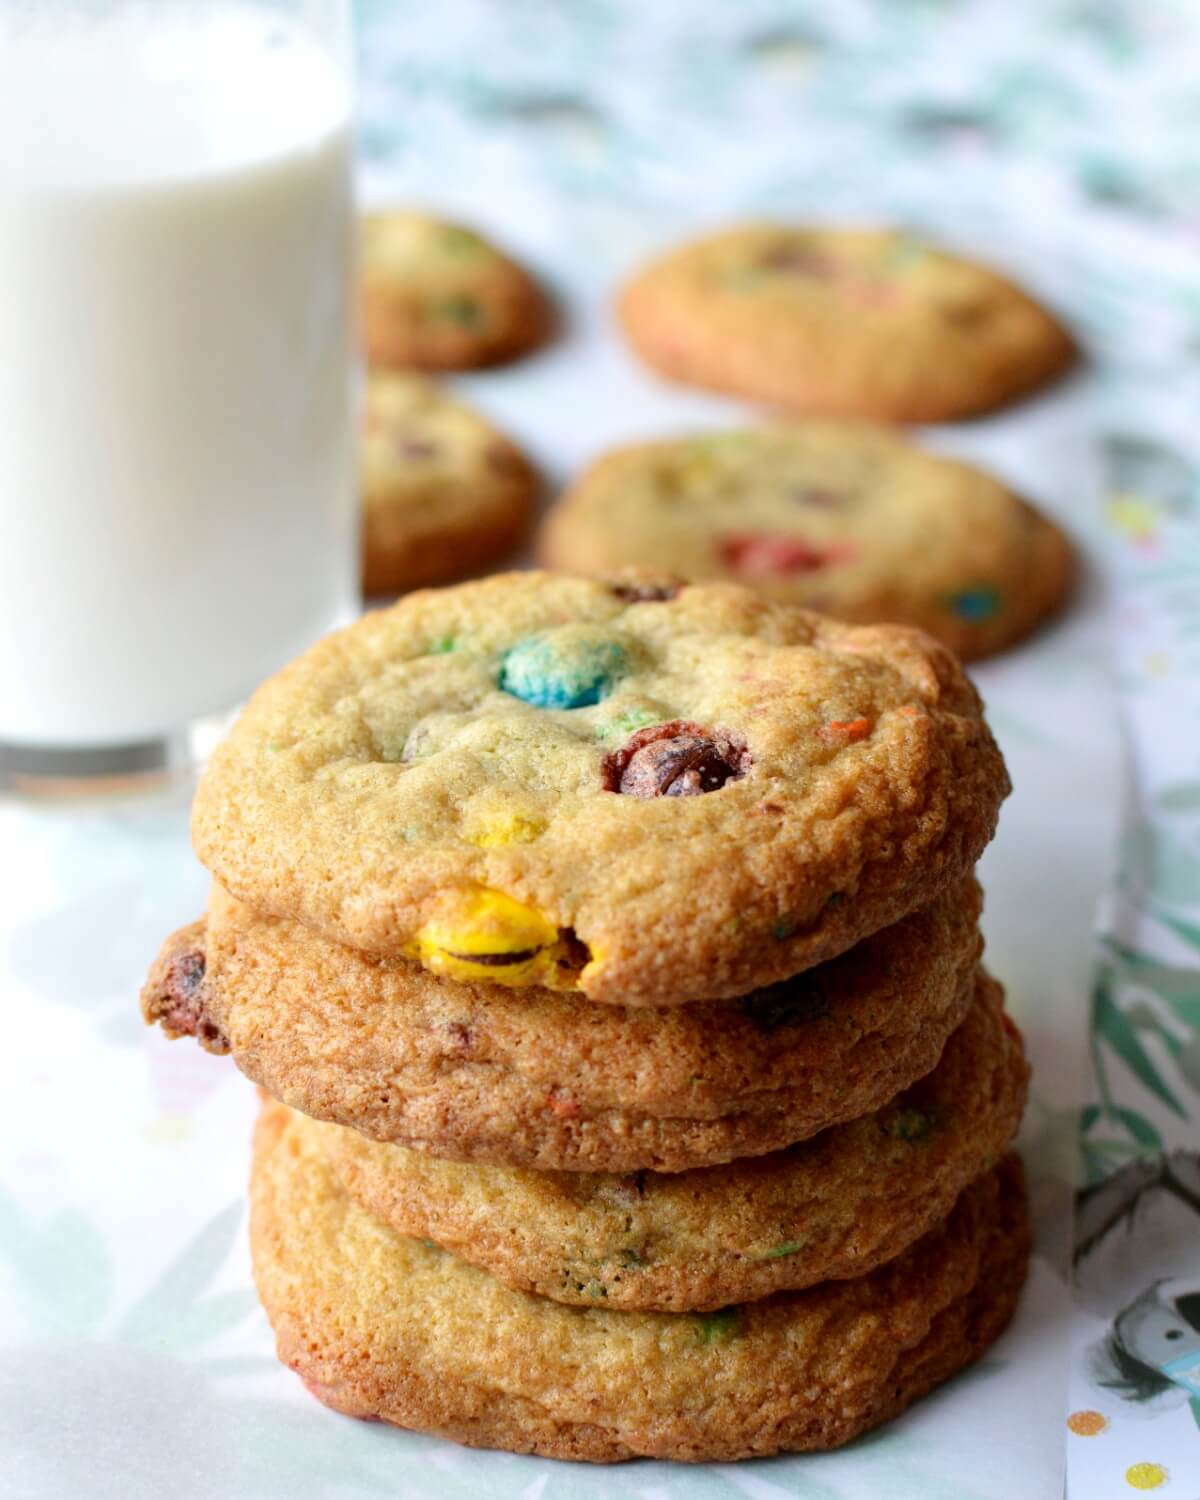 A close up of a stack of m&m cookies.